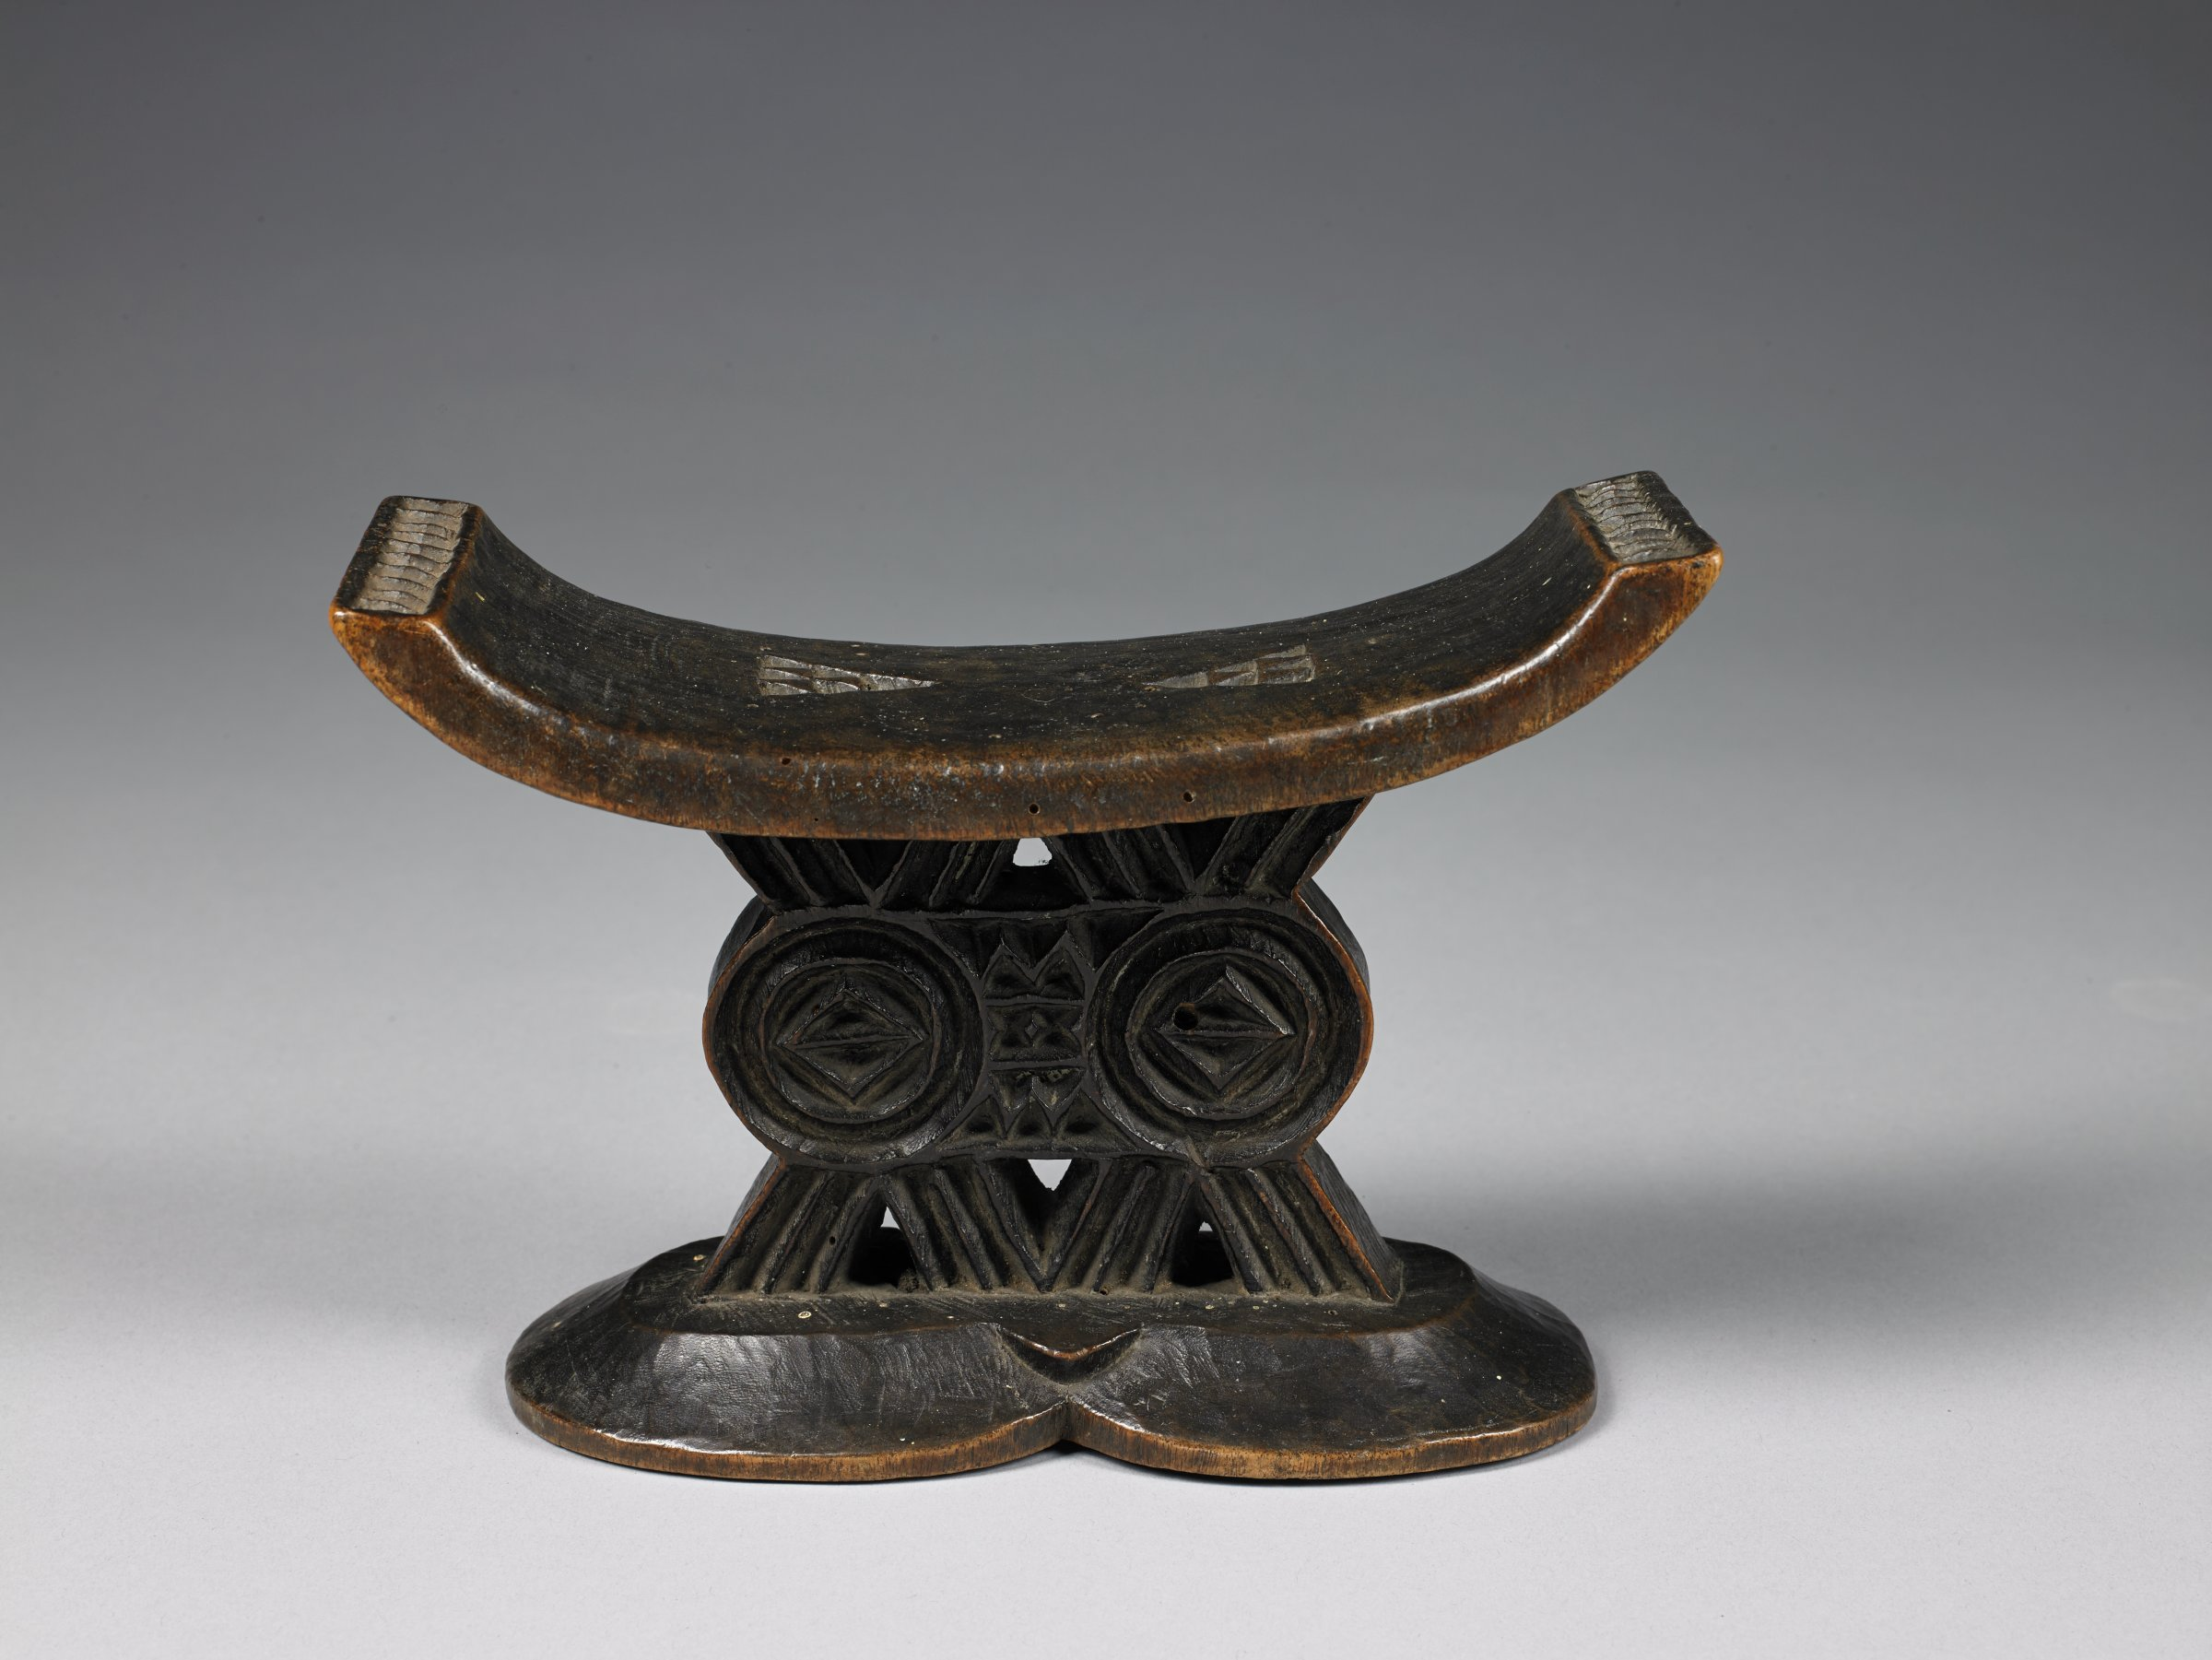 Neckrest, Mashona people, Zimbabwe, African, wood